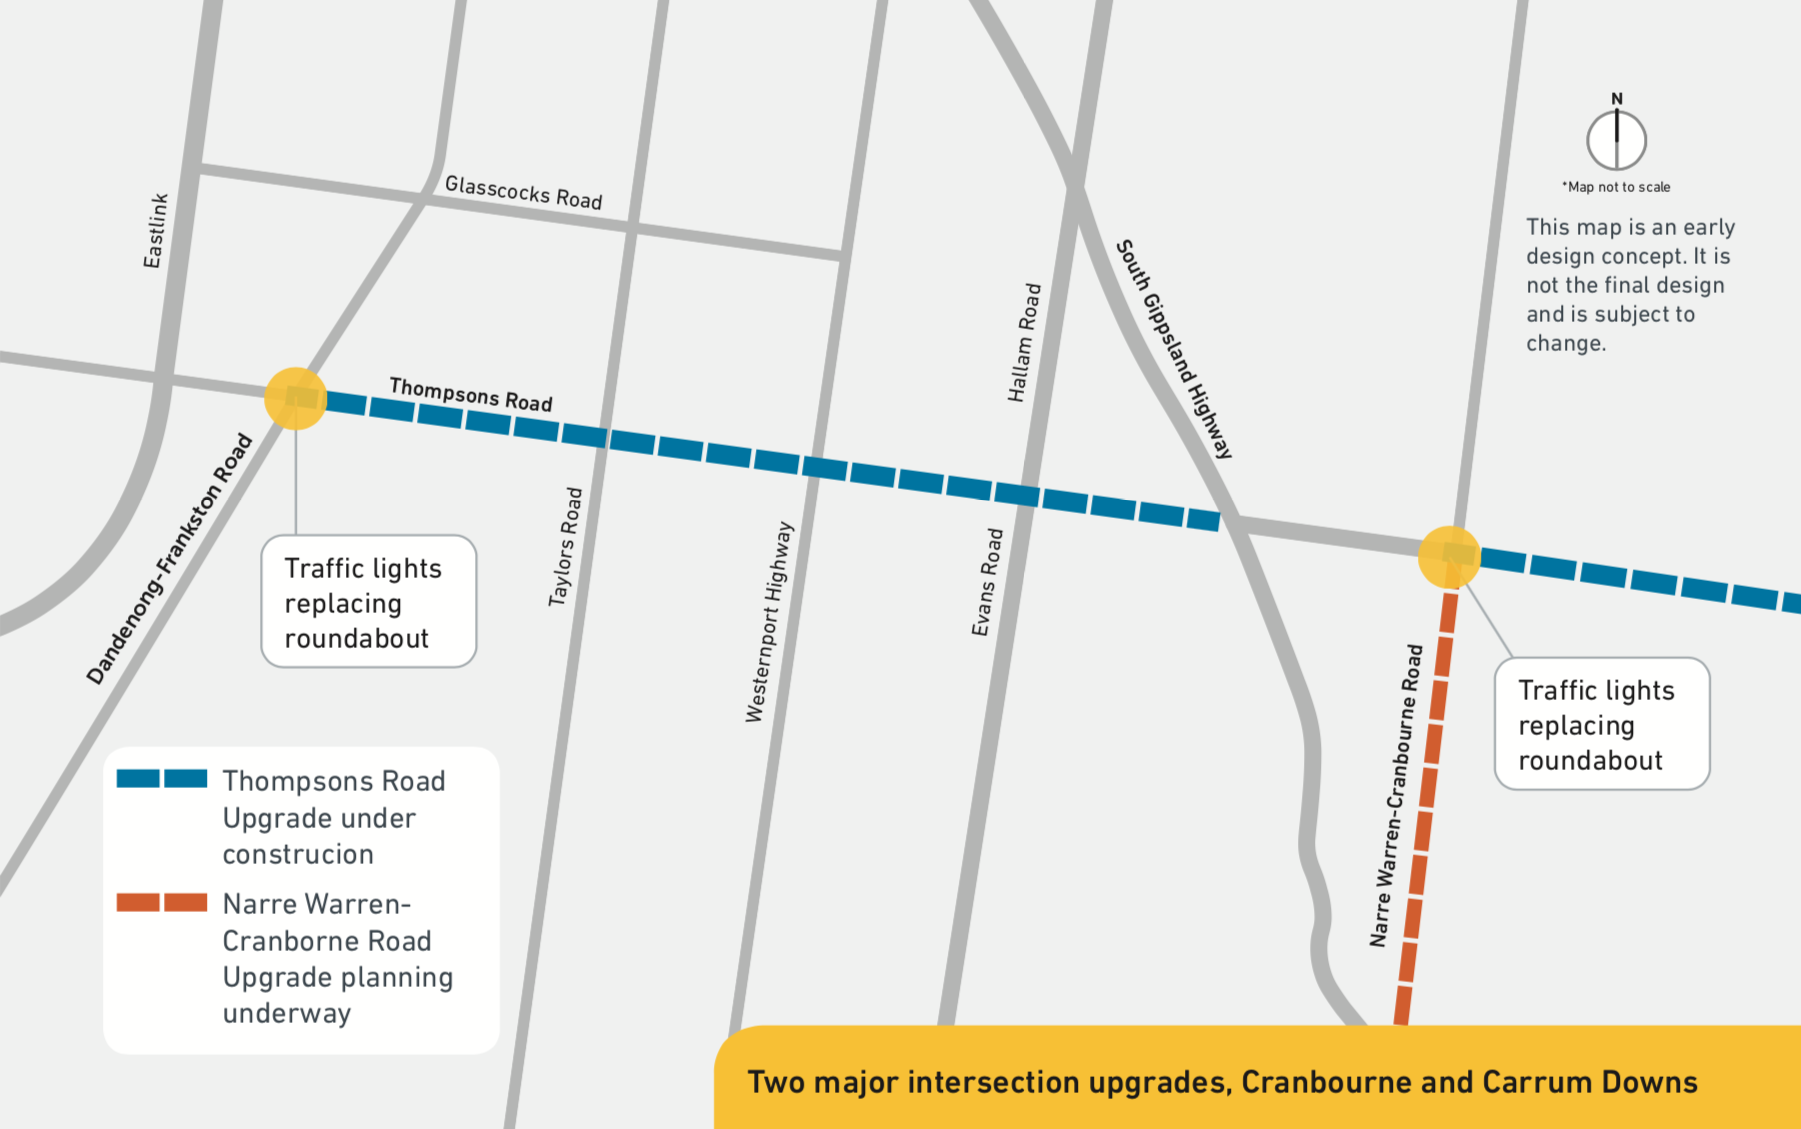 As part of the upgrade, we plan to: upgrade the existing roundabout with traffic lights at Dandenong- Frankston Road upgrade the existing roundabout with traffic lights at Narre Warren- Cranbourne Road.